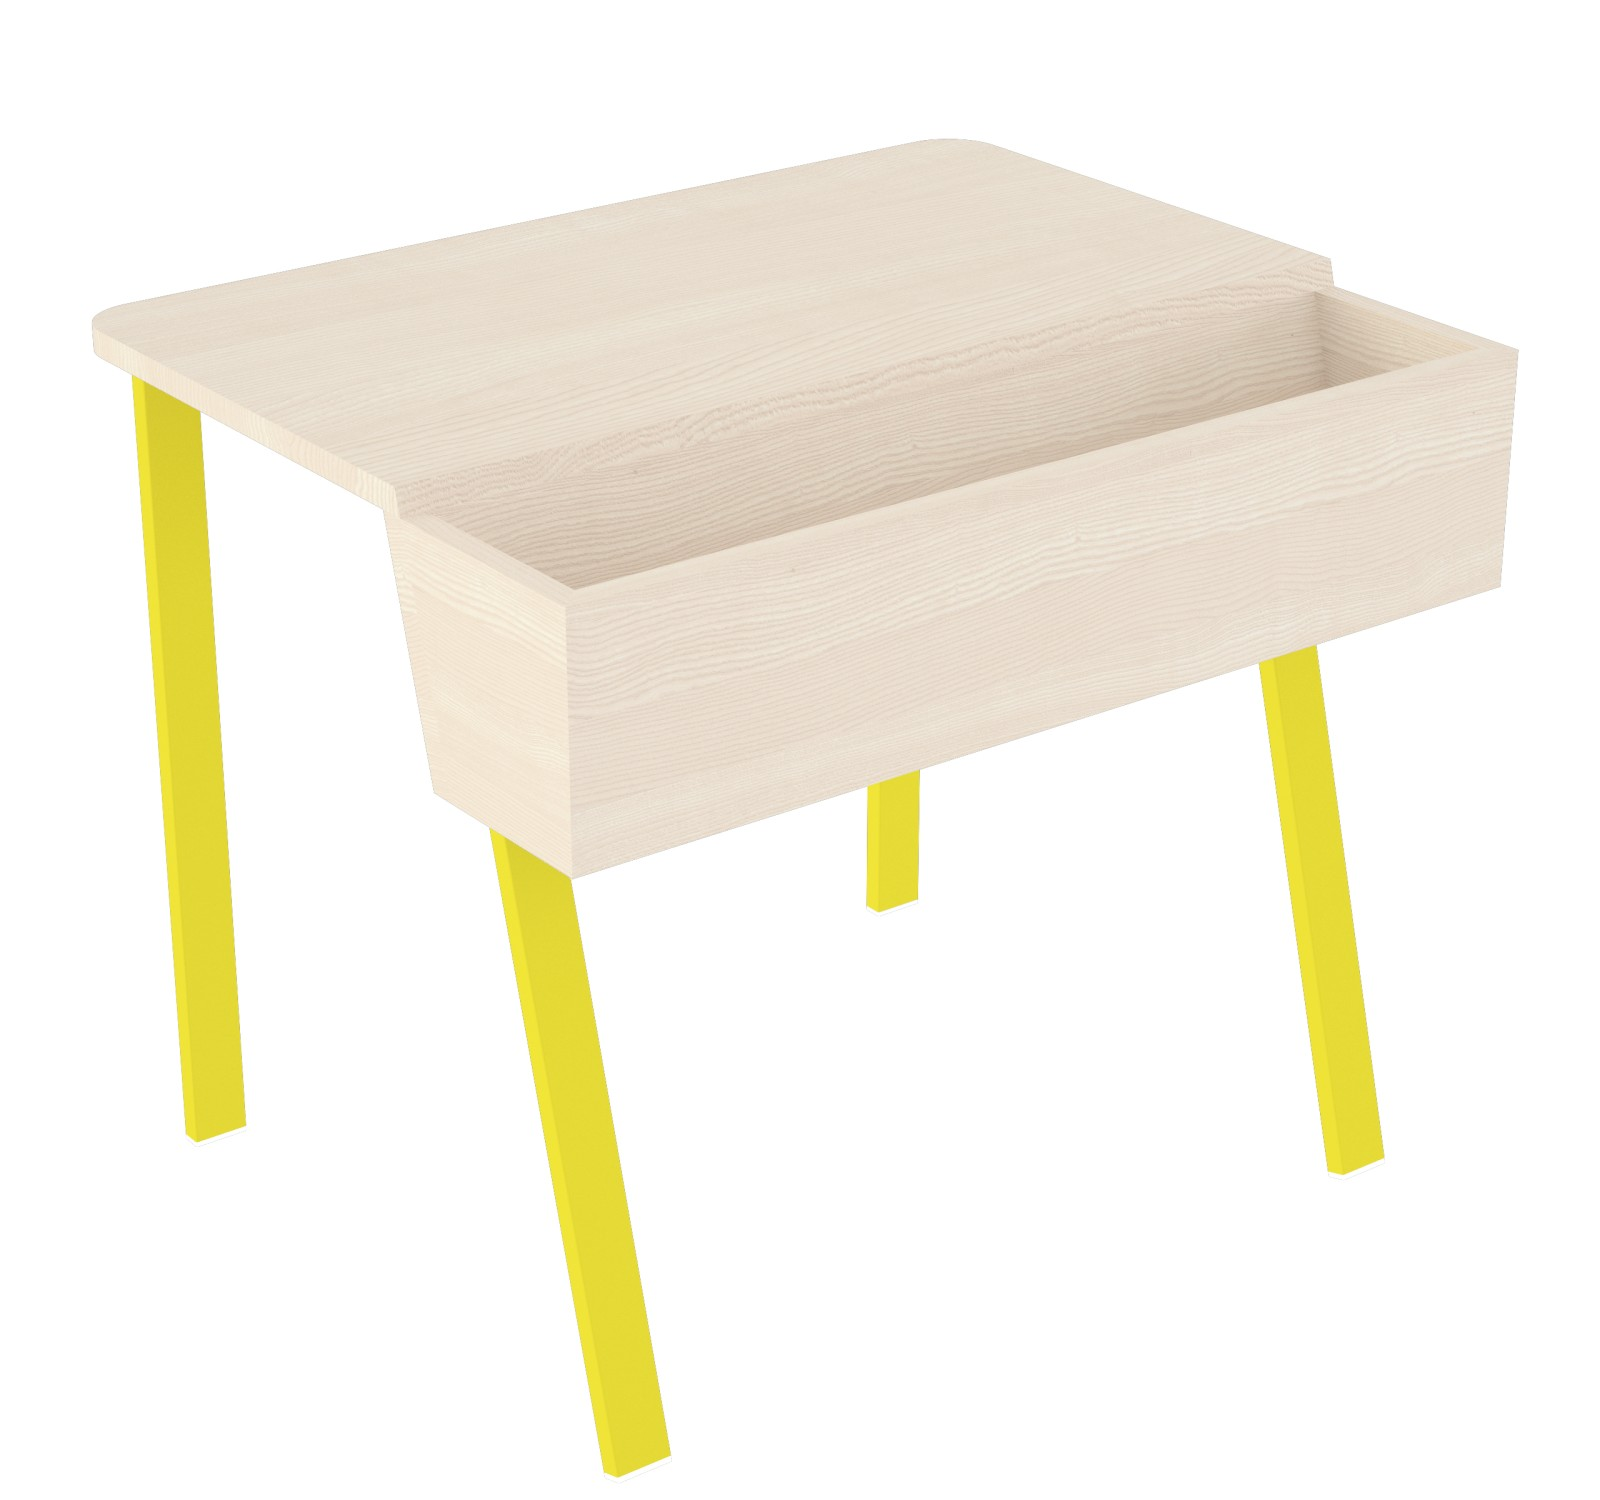 Wing Desk for One Wing Desk for One-white stained solid ash tabletop-yellow metal frame